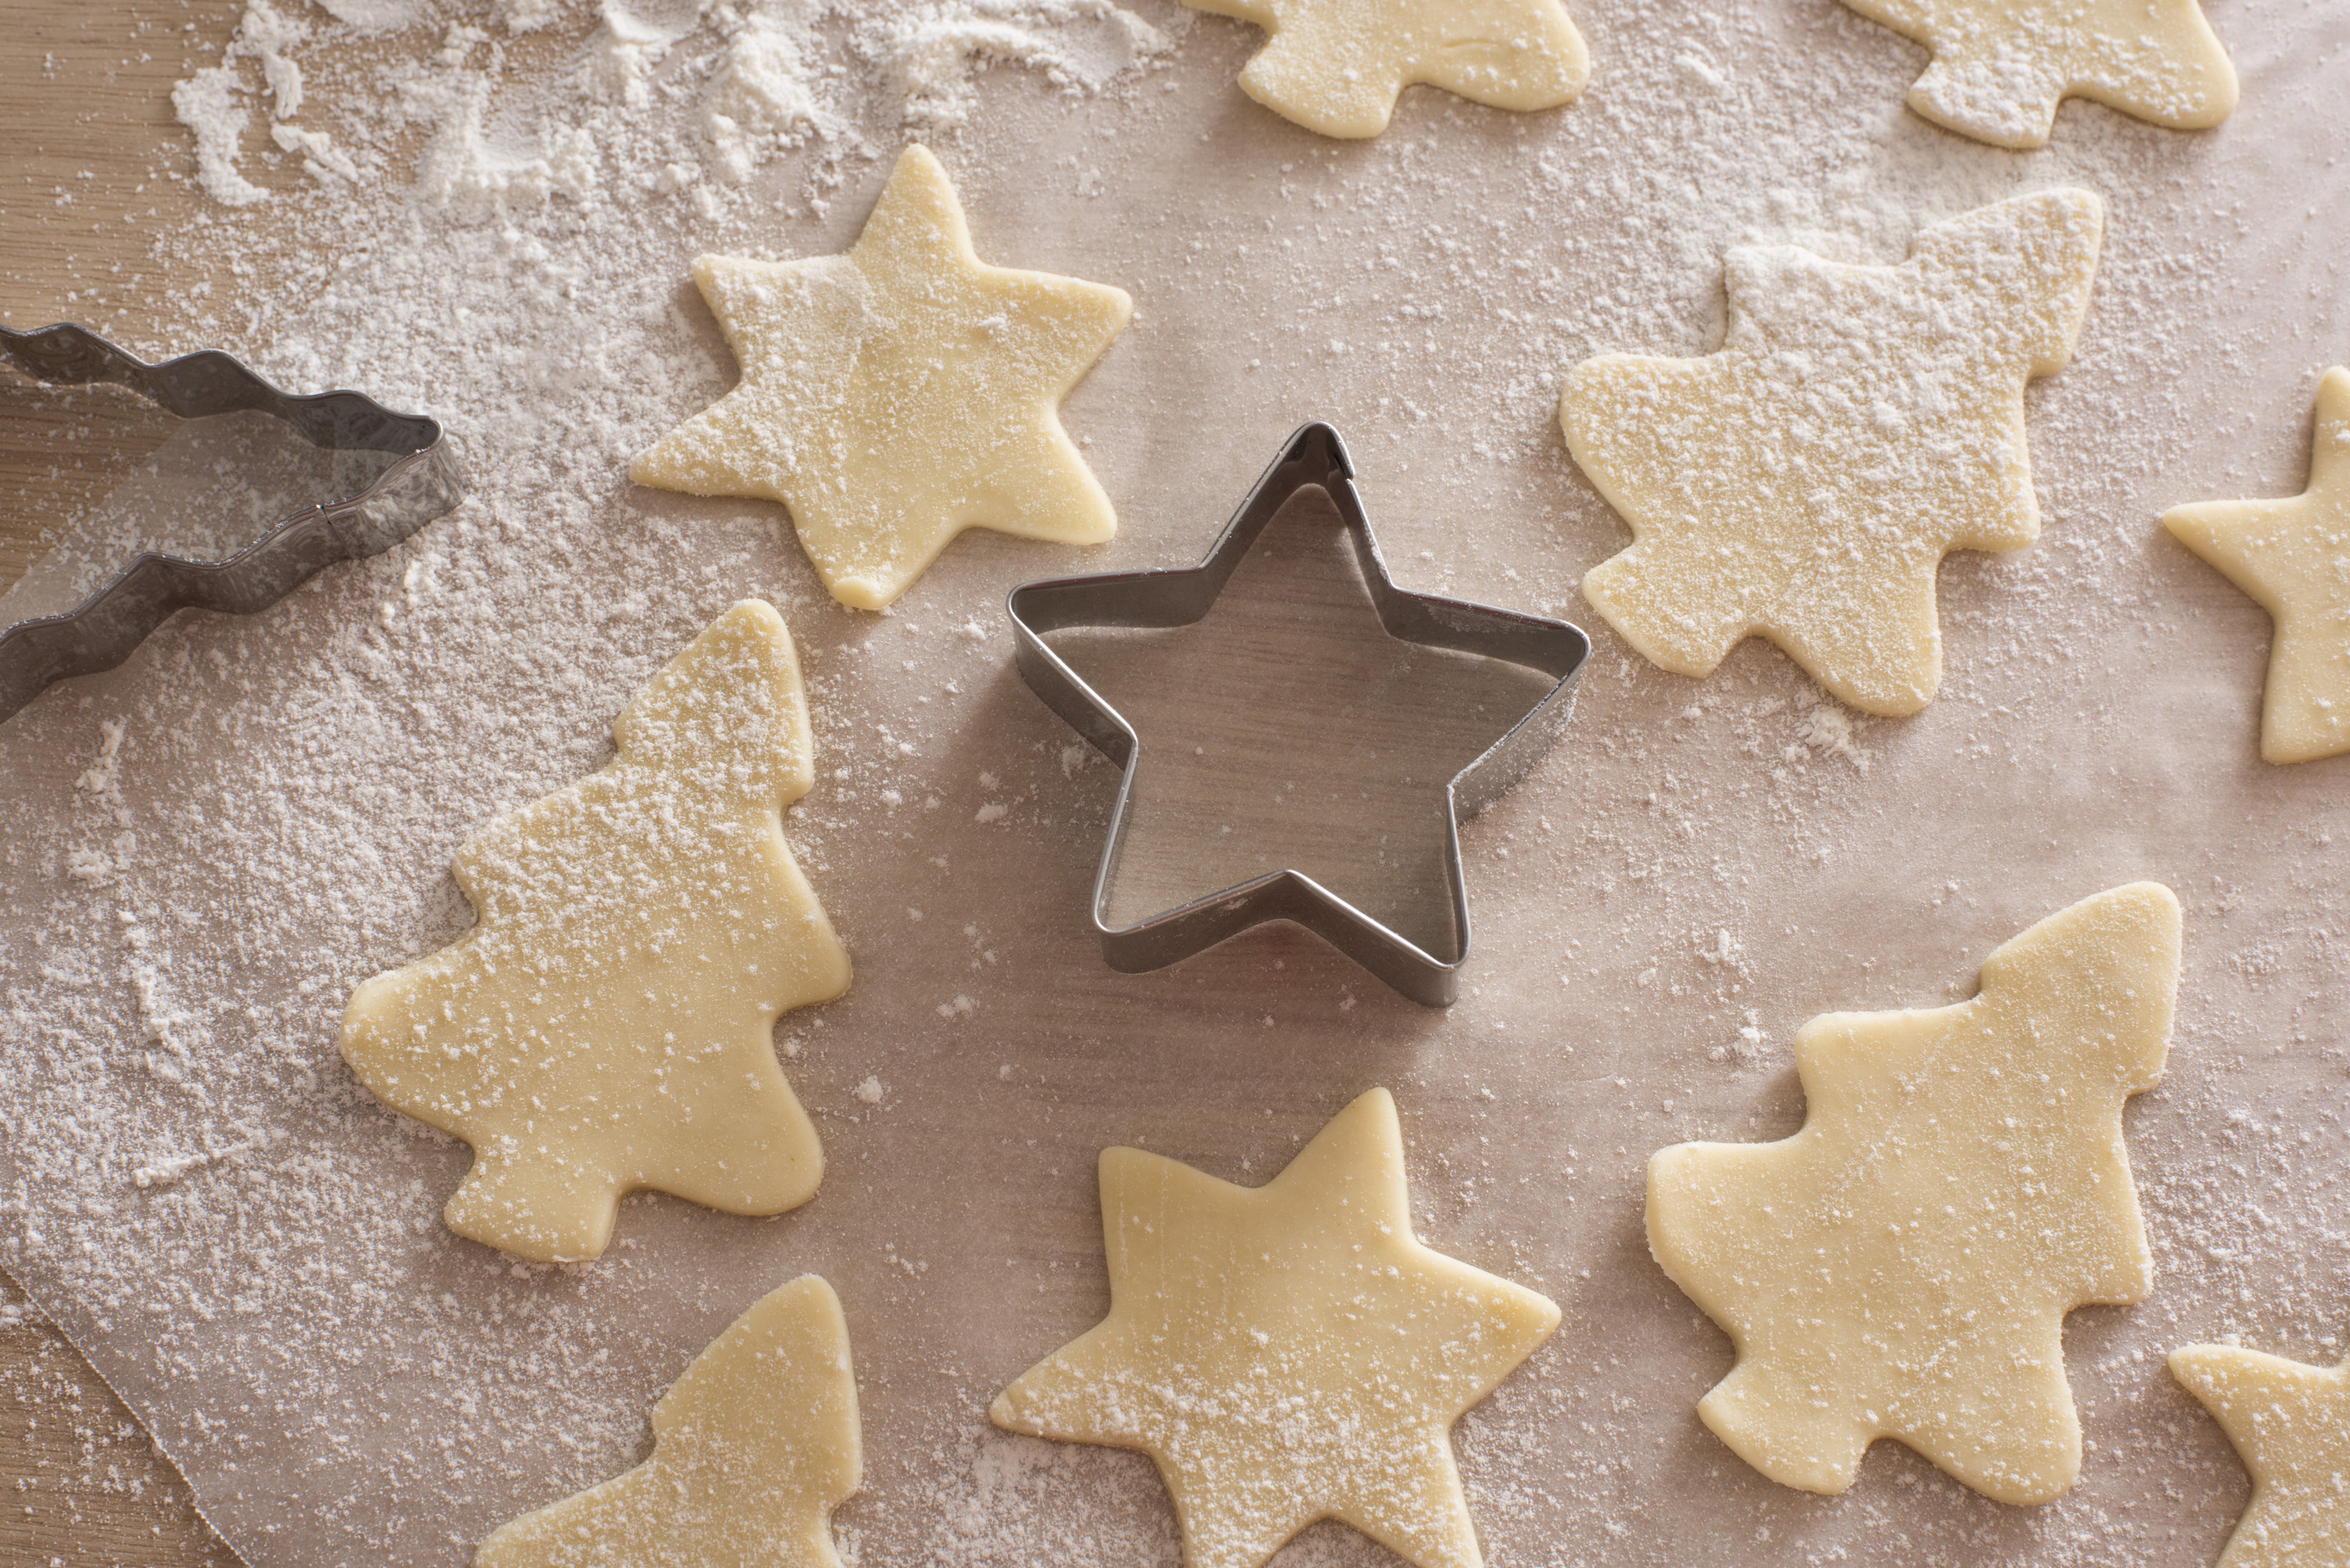 Fresh cookie dough in shapes of Christmas holiday theme stars and trees ready to bake